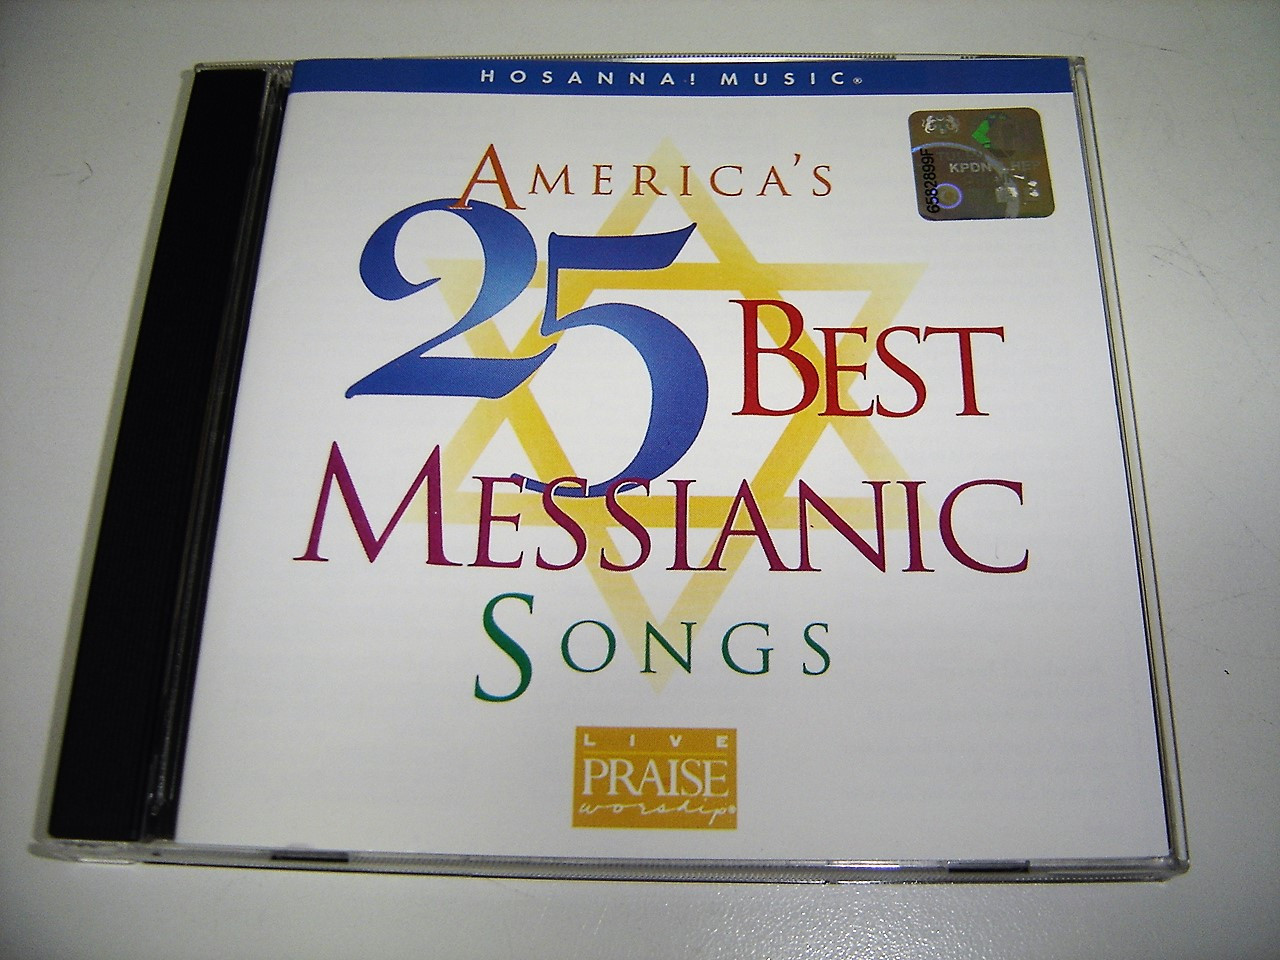 America's 25 Best Messianic Songs / Hosanna! Music / Live Praise and  Worship / Anointed and Powerful Worship Experience